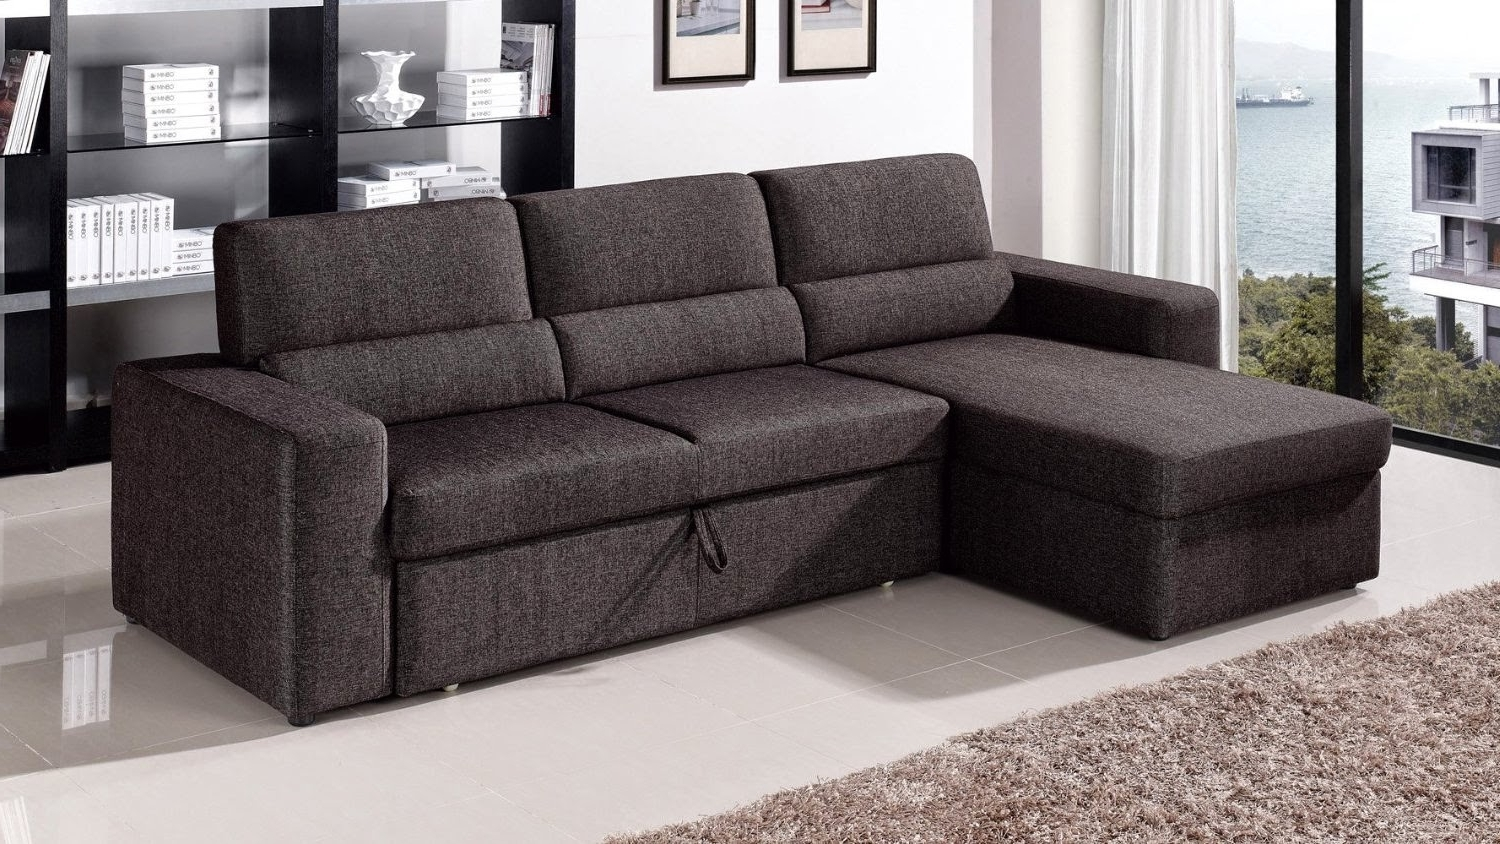 2017 Elegant Sectional Sofa With Pull Out Sleeper 30 About Remodel L Intended For L Shaped Sectional Sleeper Sofas (View 10 of 15)